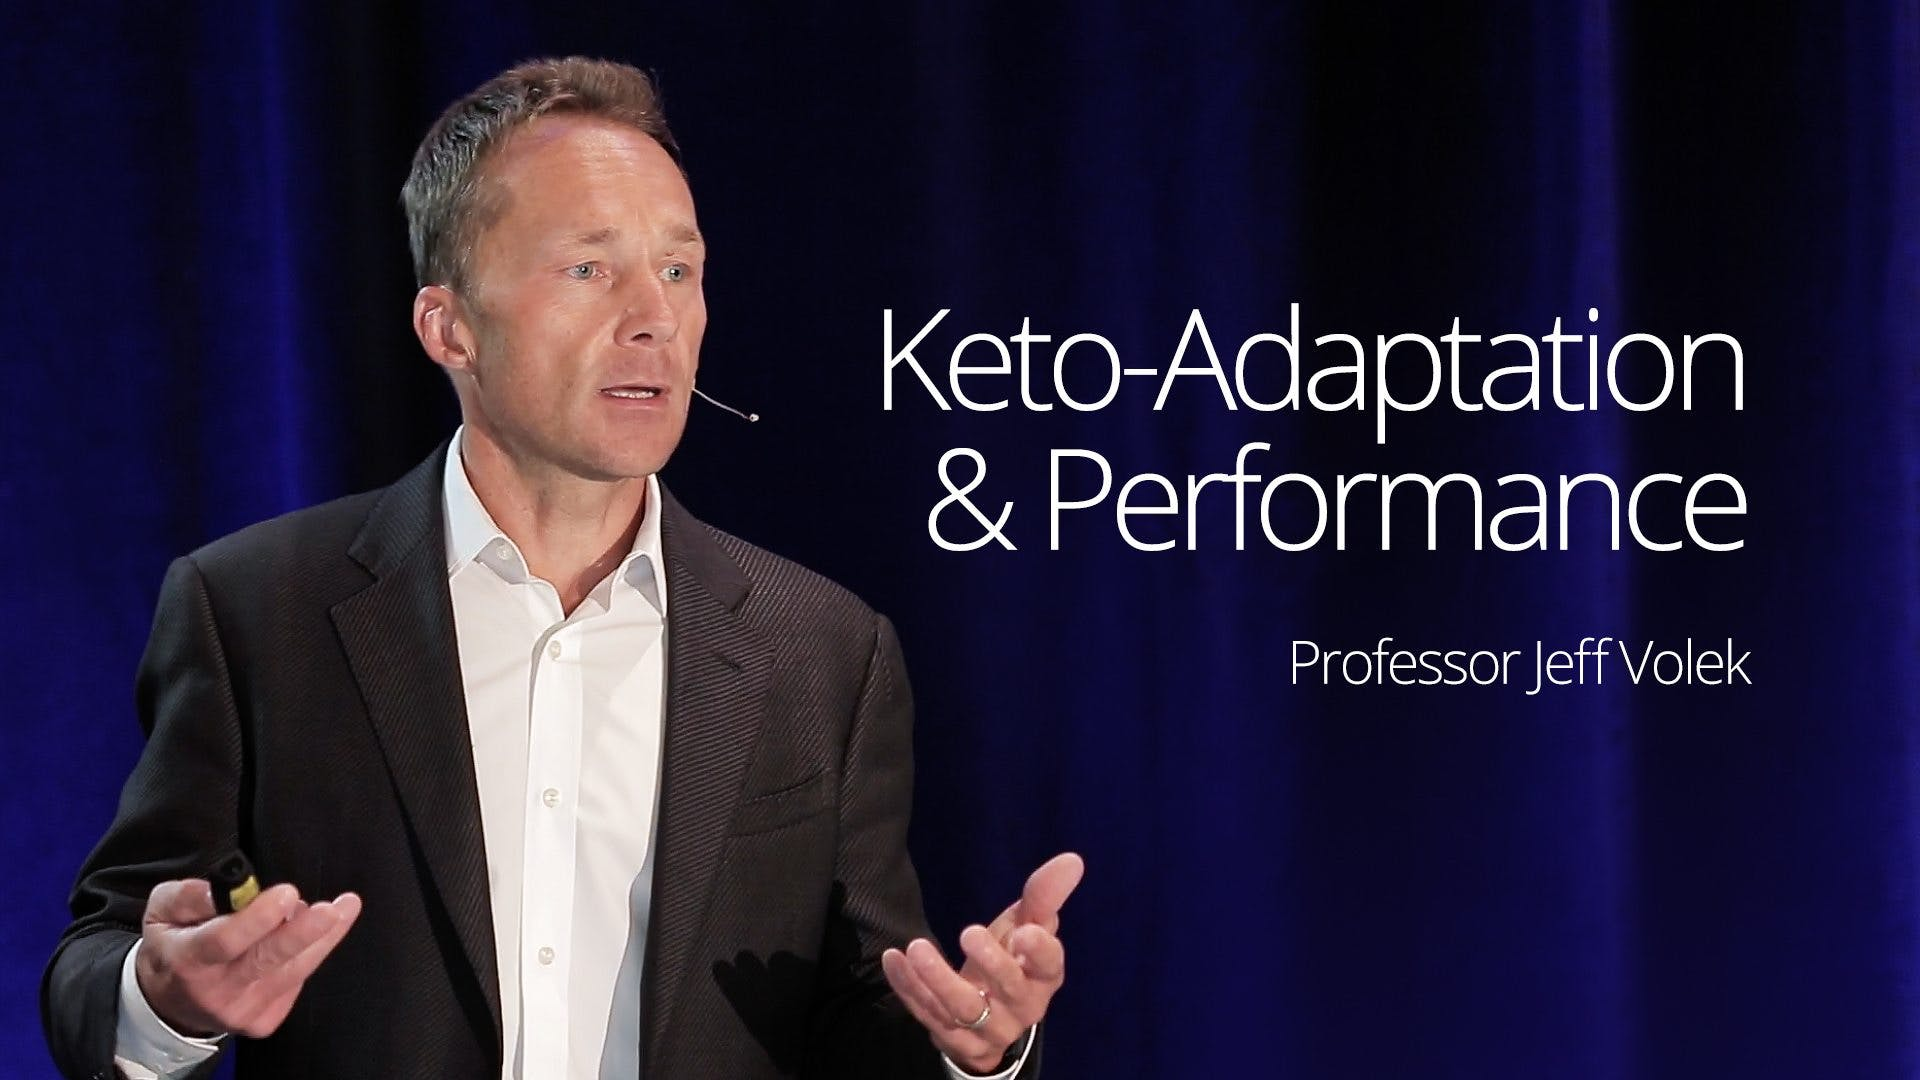 Keto-Adaptation and Performance